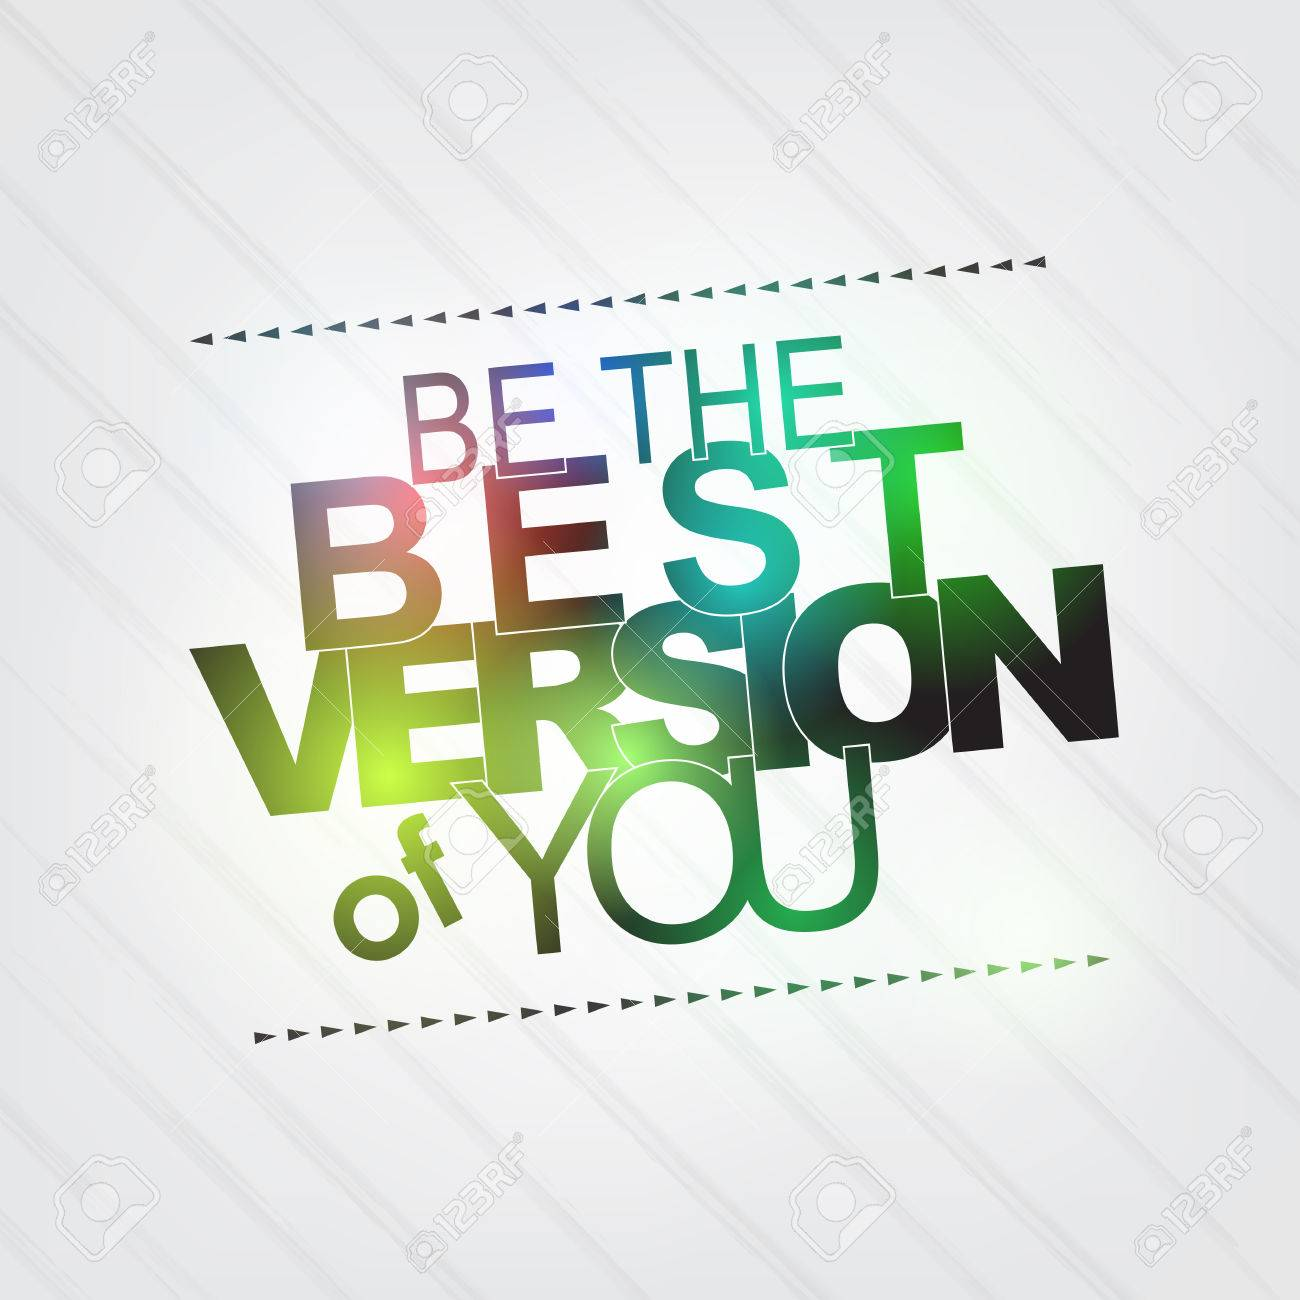 Be the best version of you. Motivational background Stock Vector - 27240375